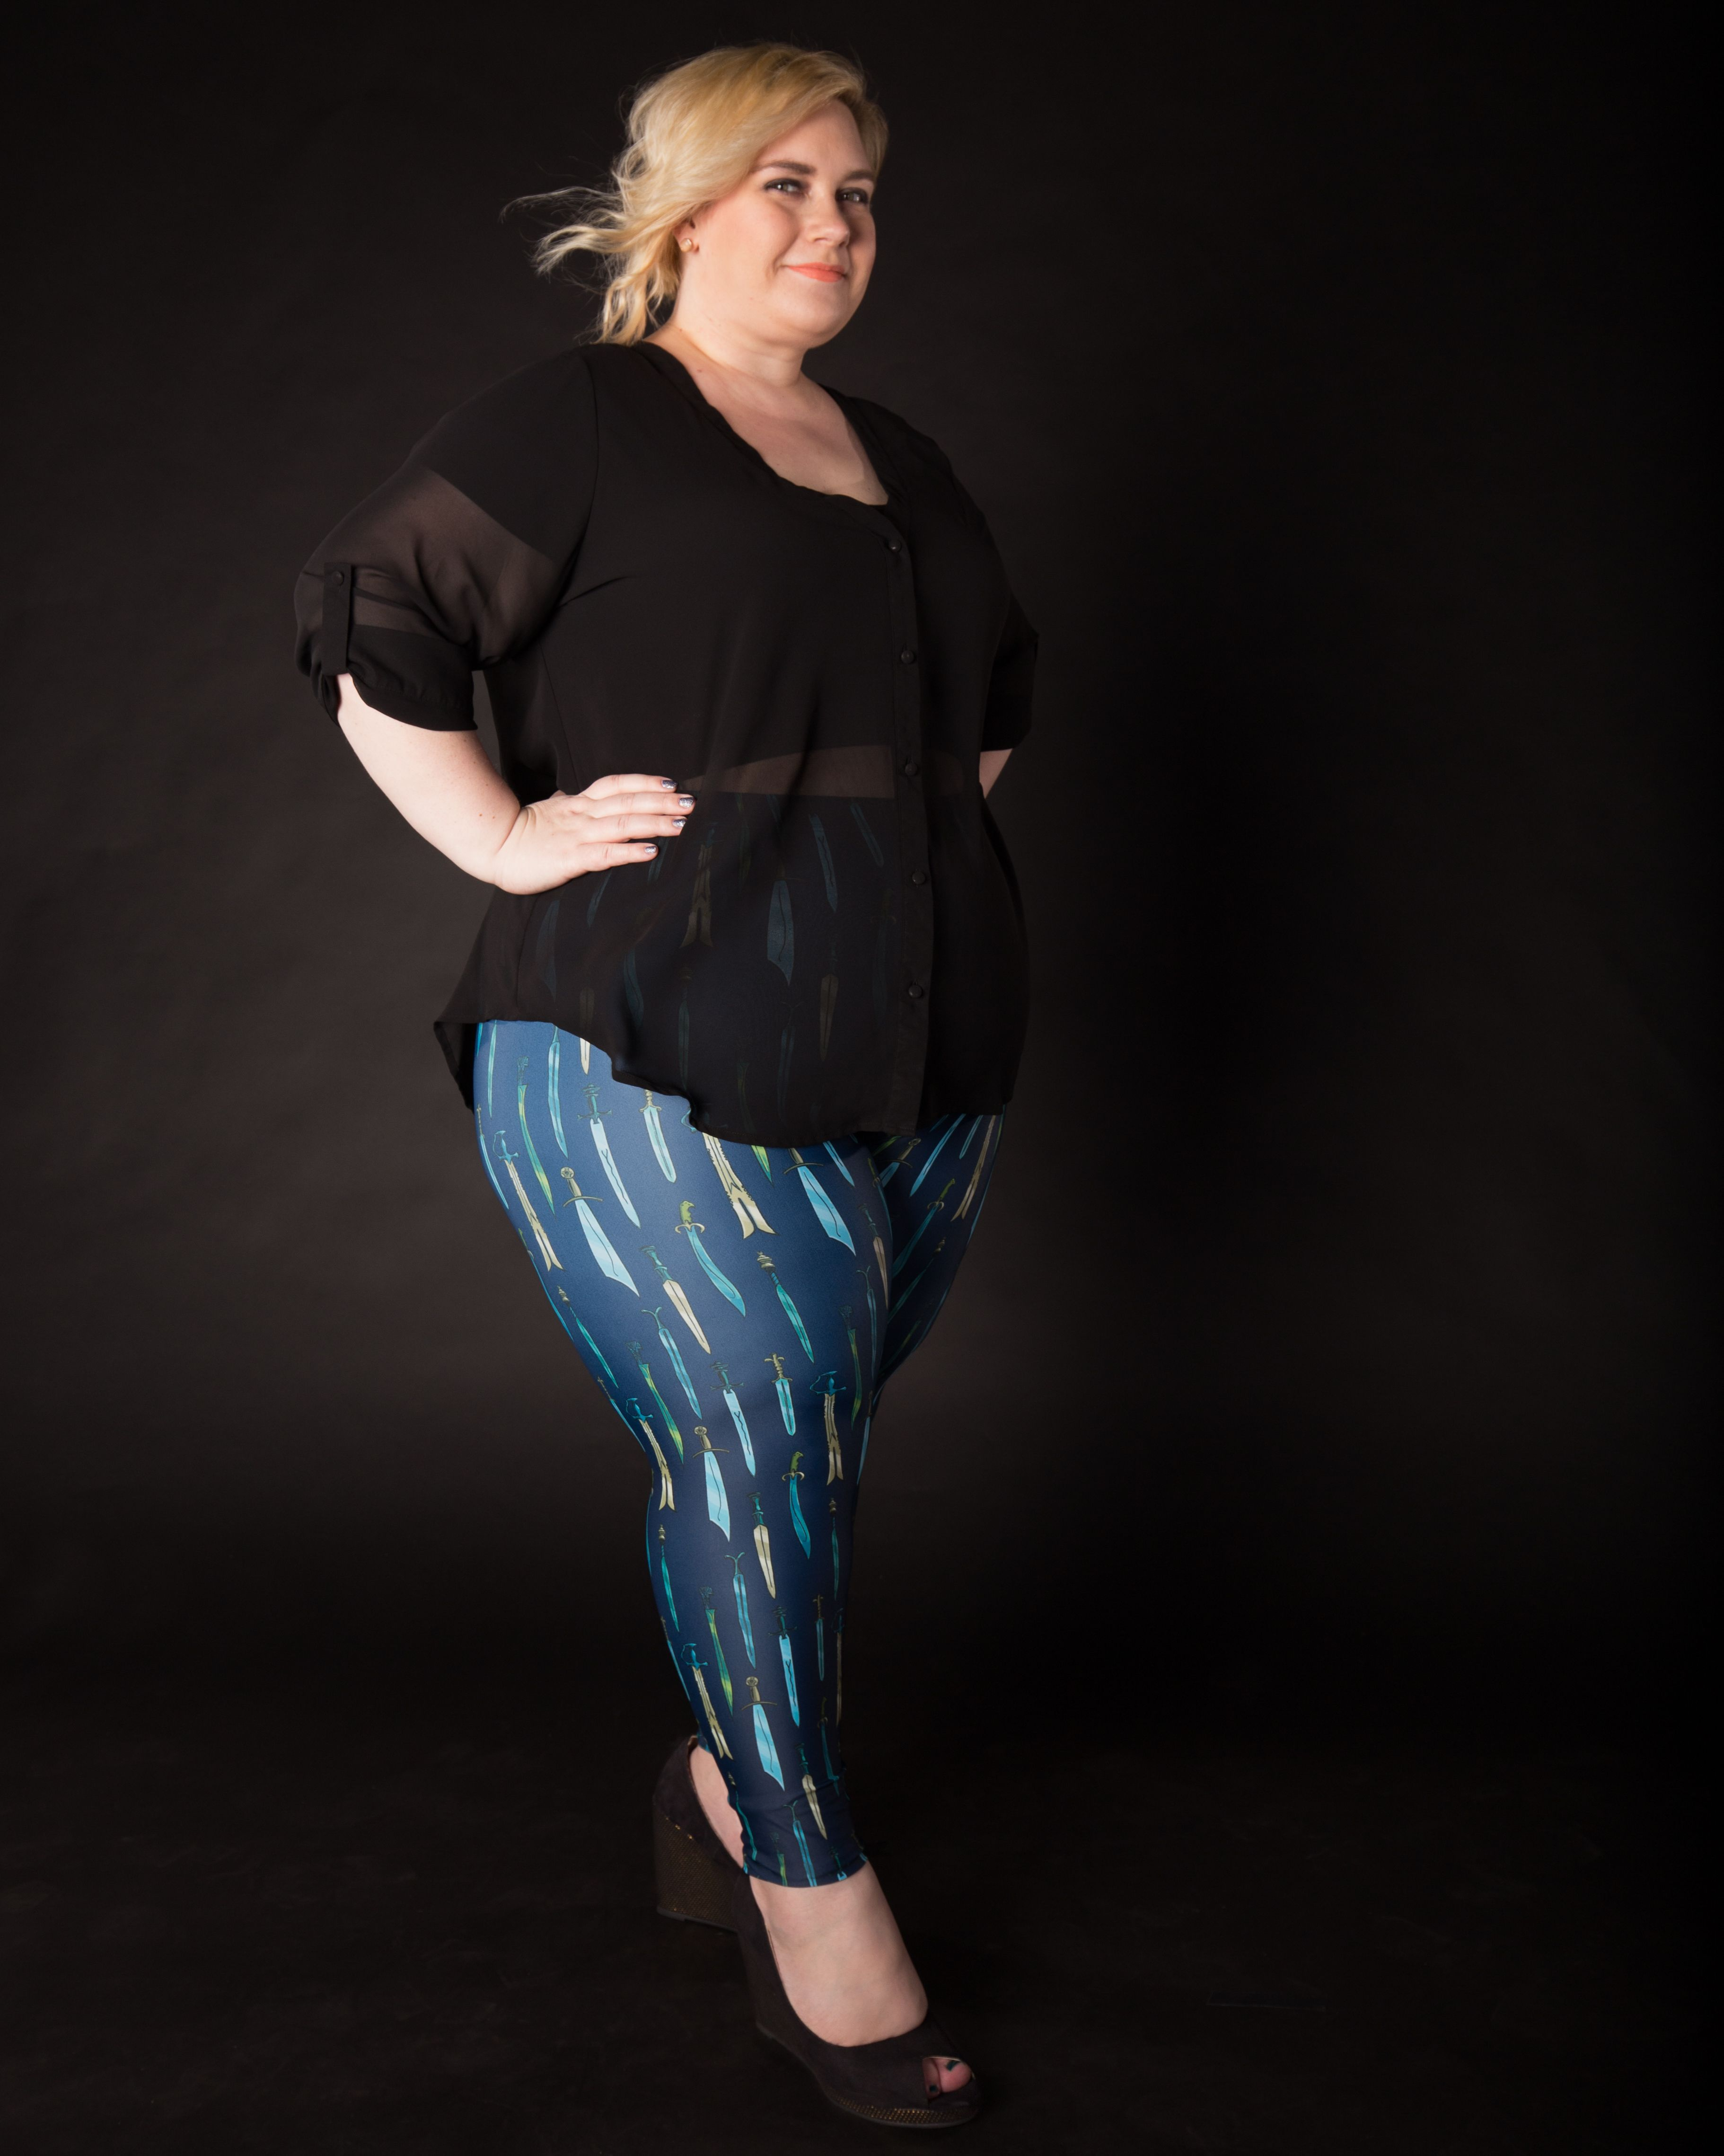 Rachel in #WeaponOfChoice.  plus size fashion, plus size model, plus size leggings